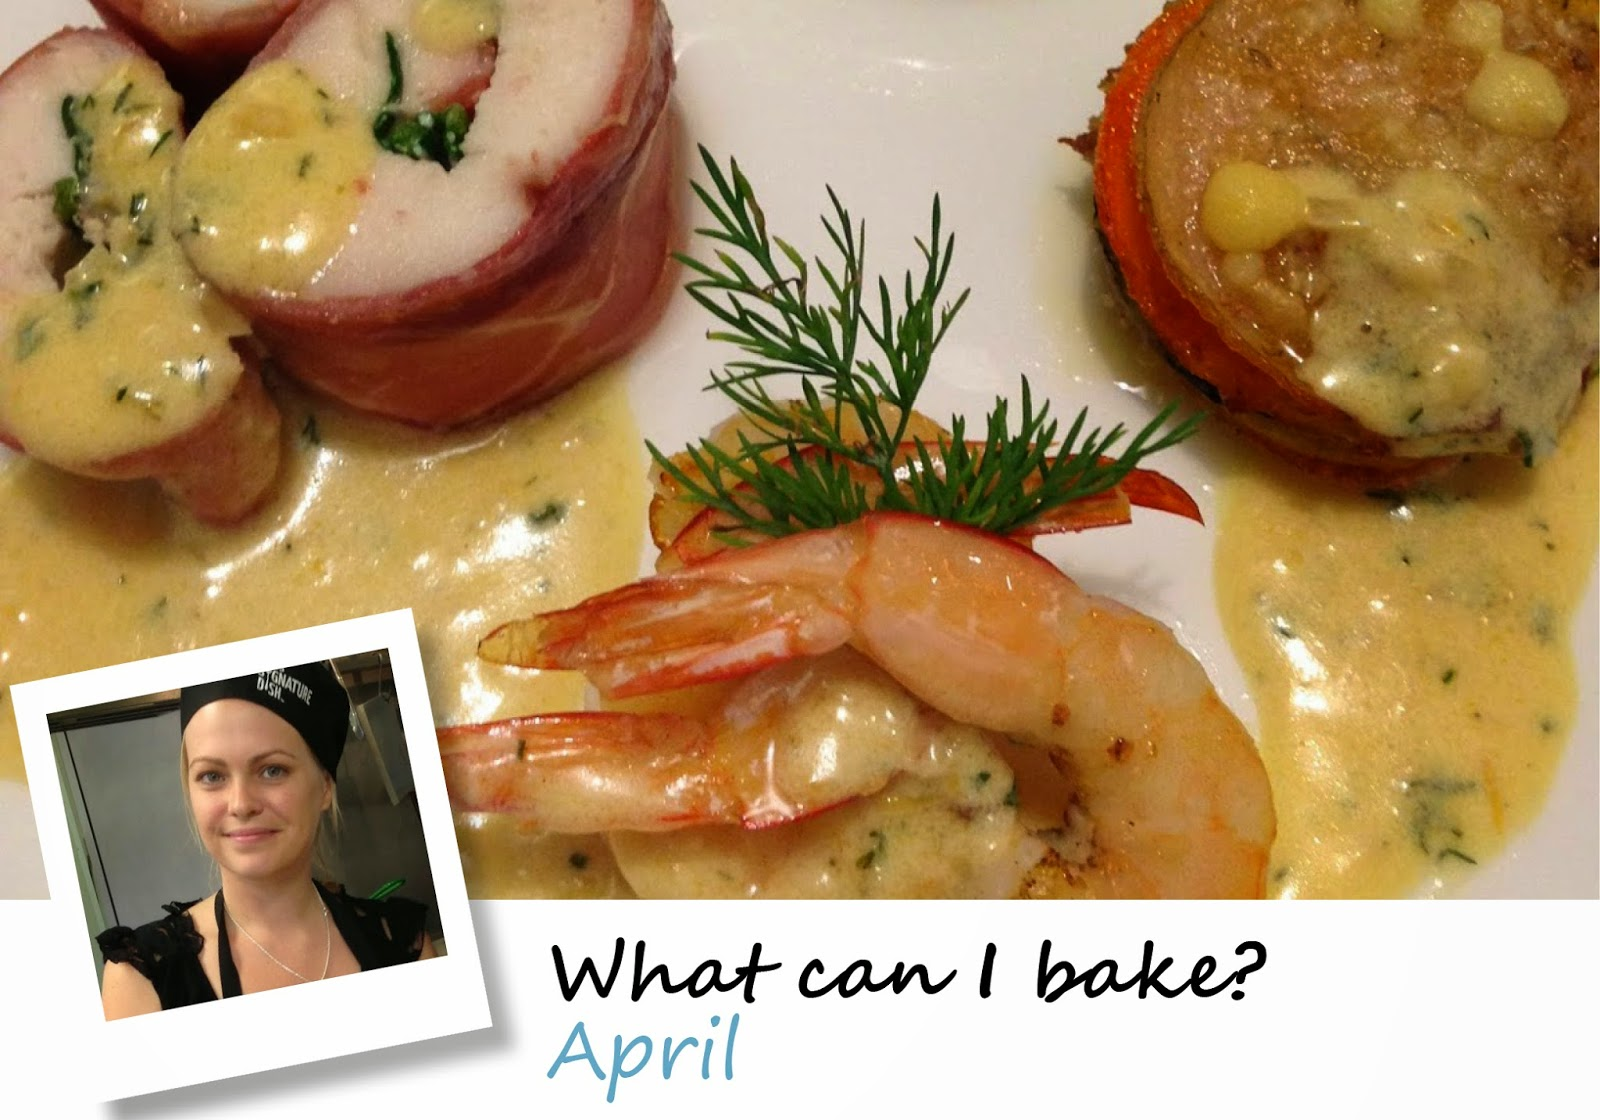 April - What can I bake?